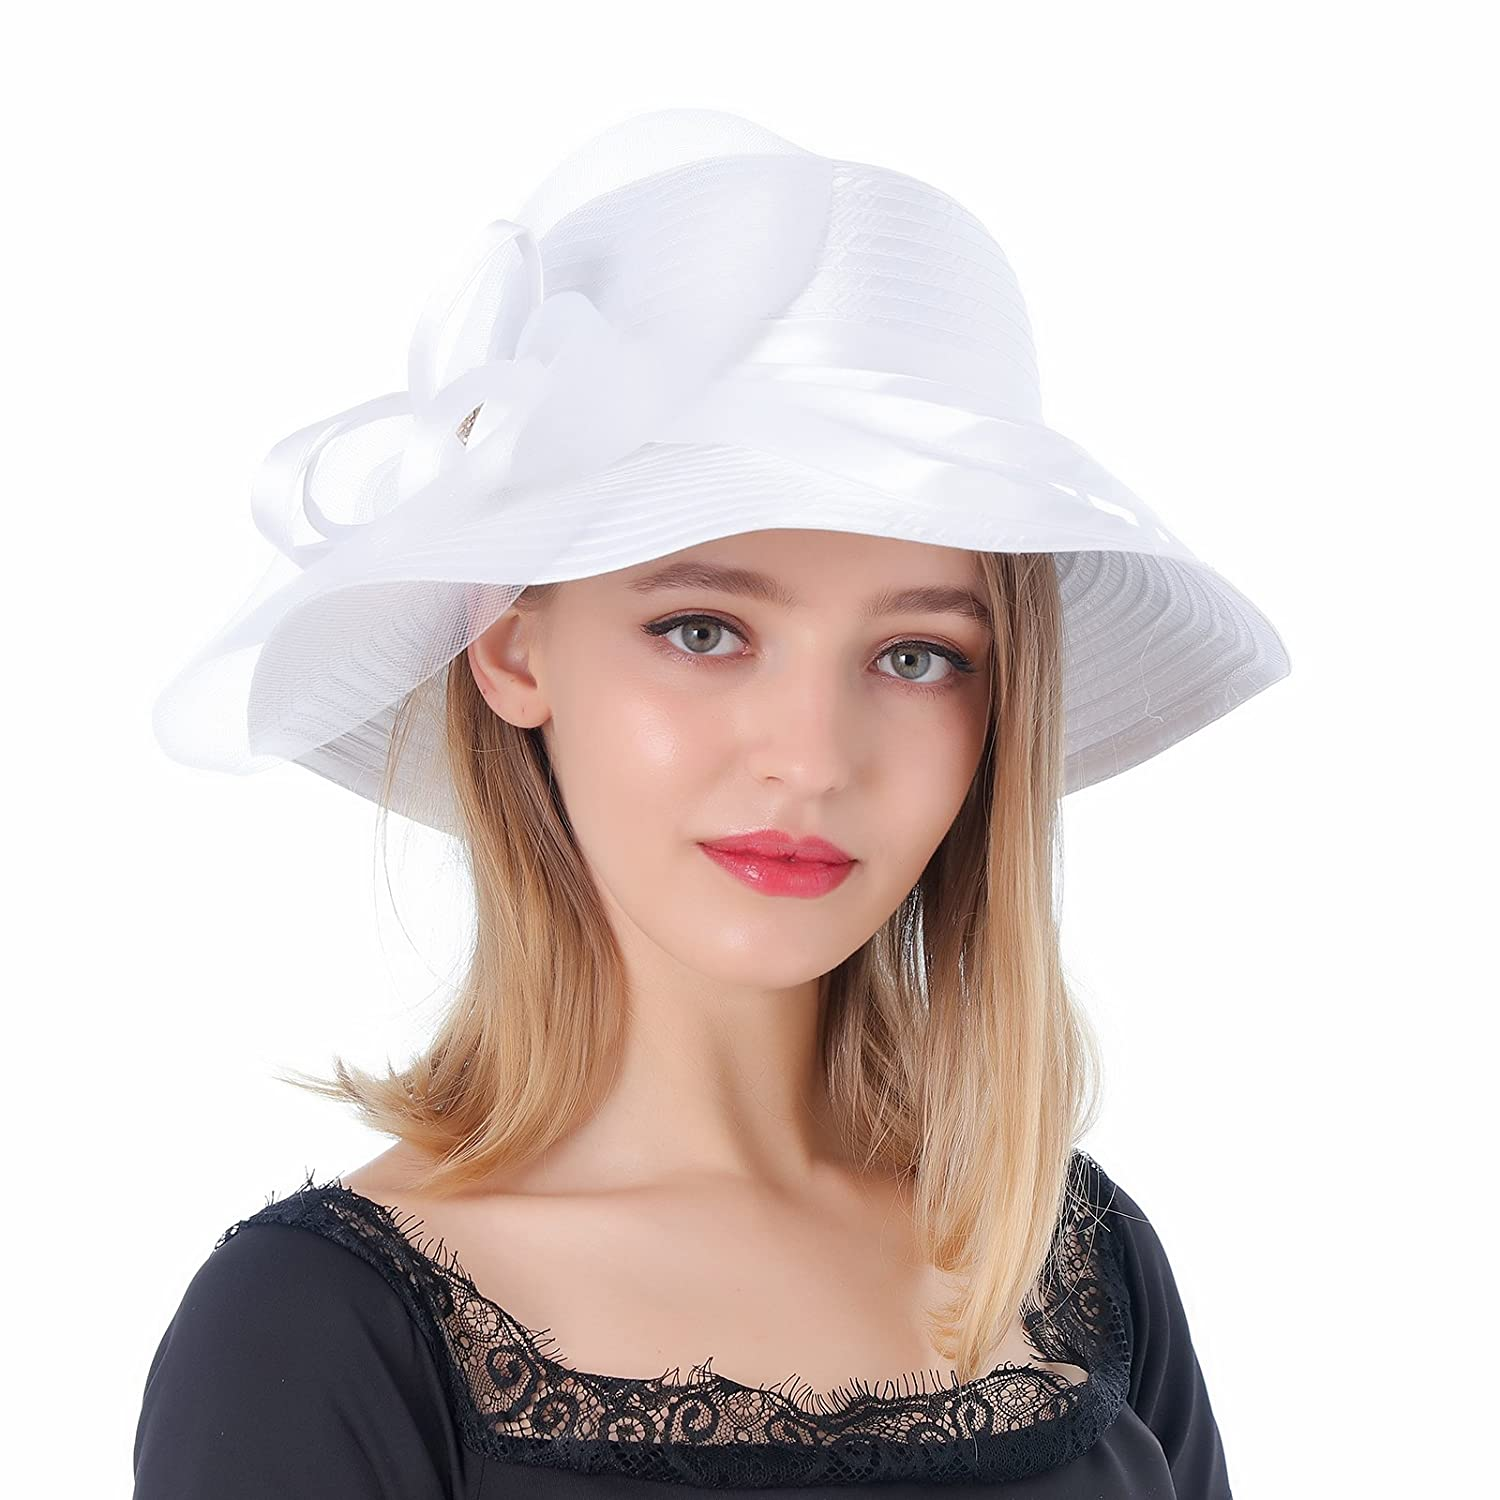 1930s Style Hats | Buy 30s Ladies Hats Dantiya Sun Hats For Womens Summer Wide Brim Kentucky Derby Church Dress Wedding Floral Party Hat $16.99 AT vintagedancer.com